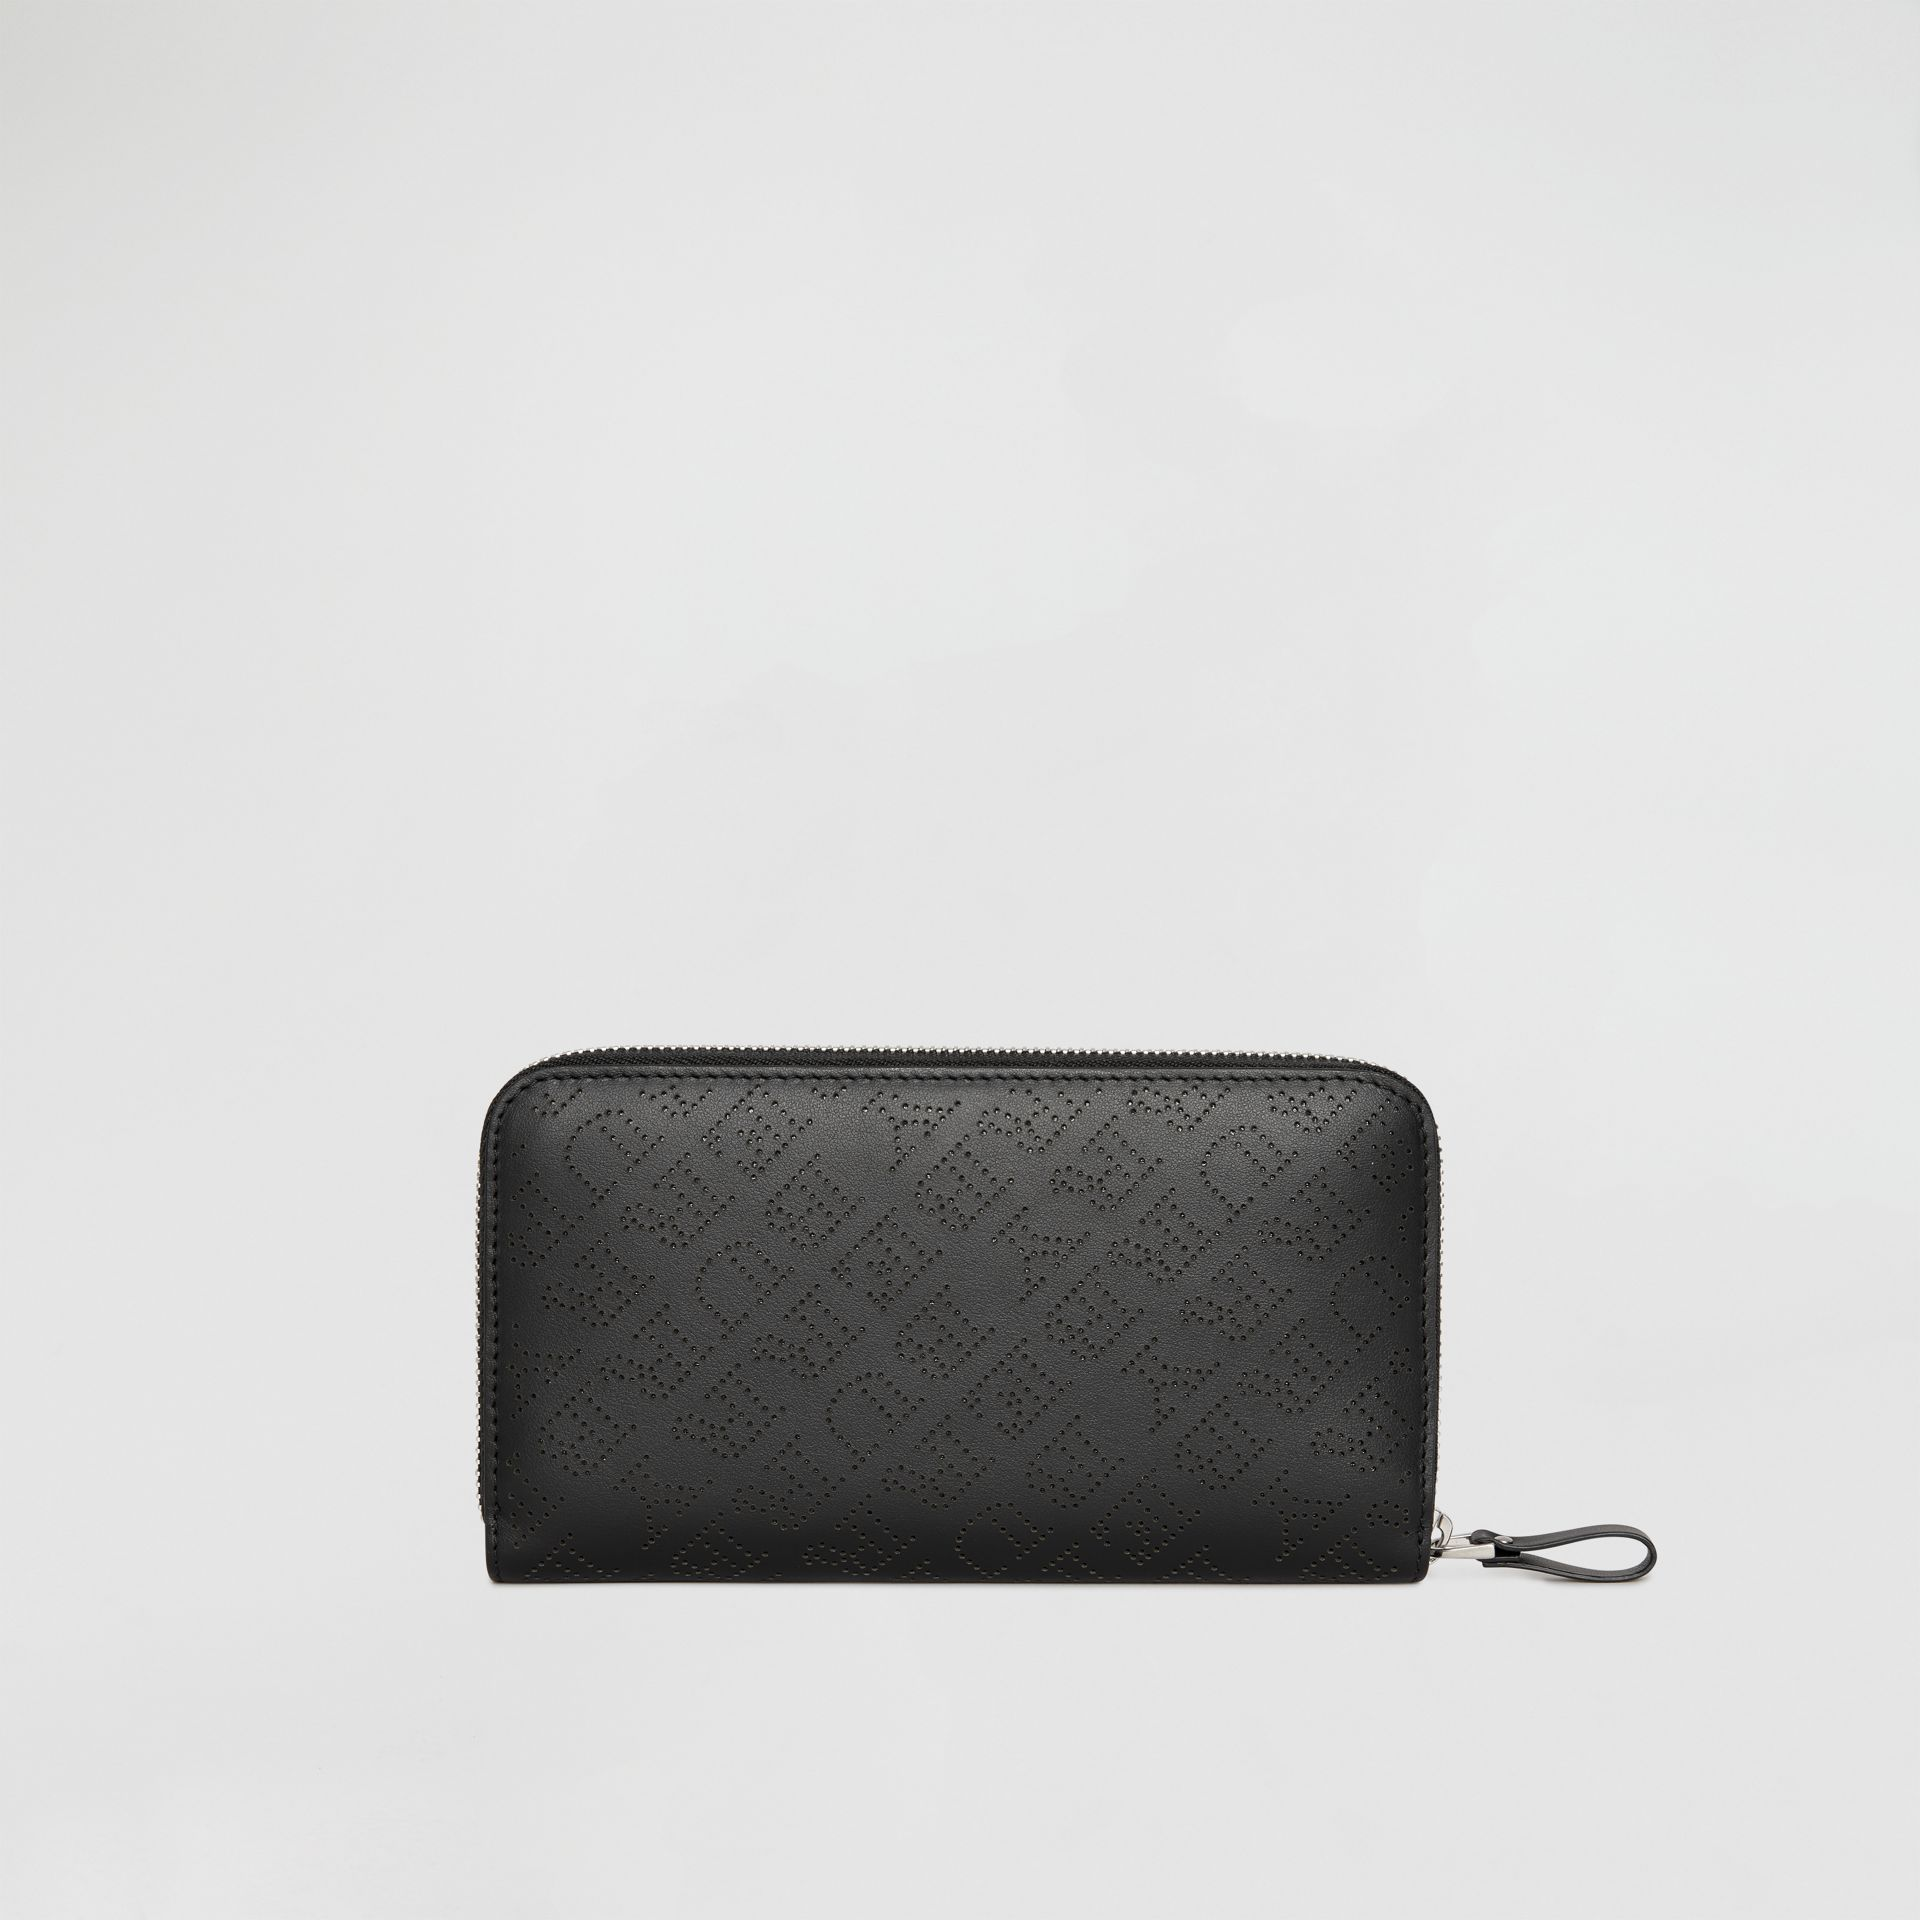 Perforated Leather Ziparound Wallet in Black - Women | Burberry - gallery image 4